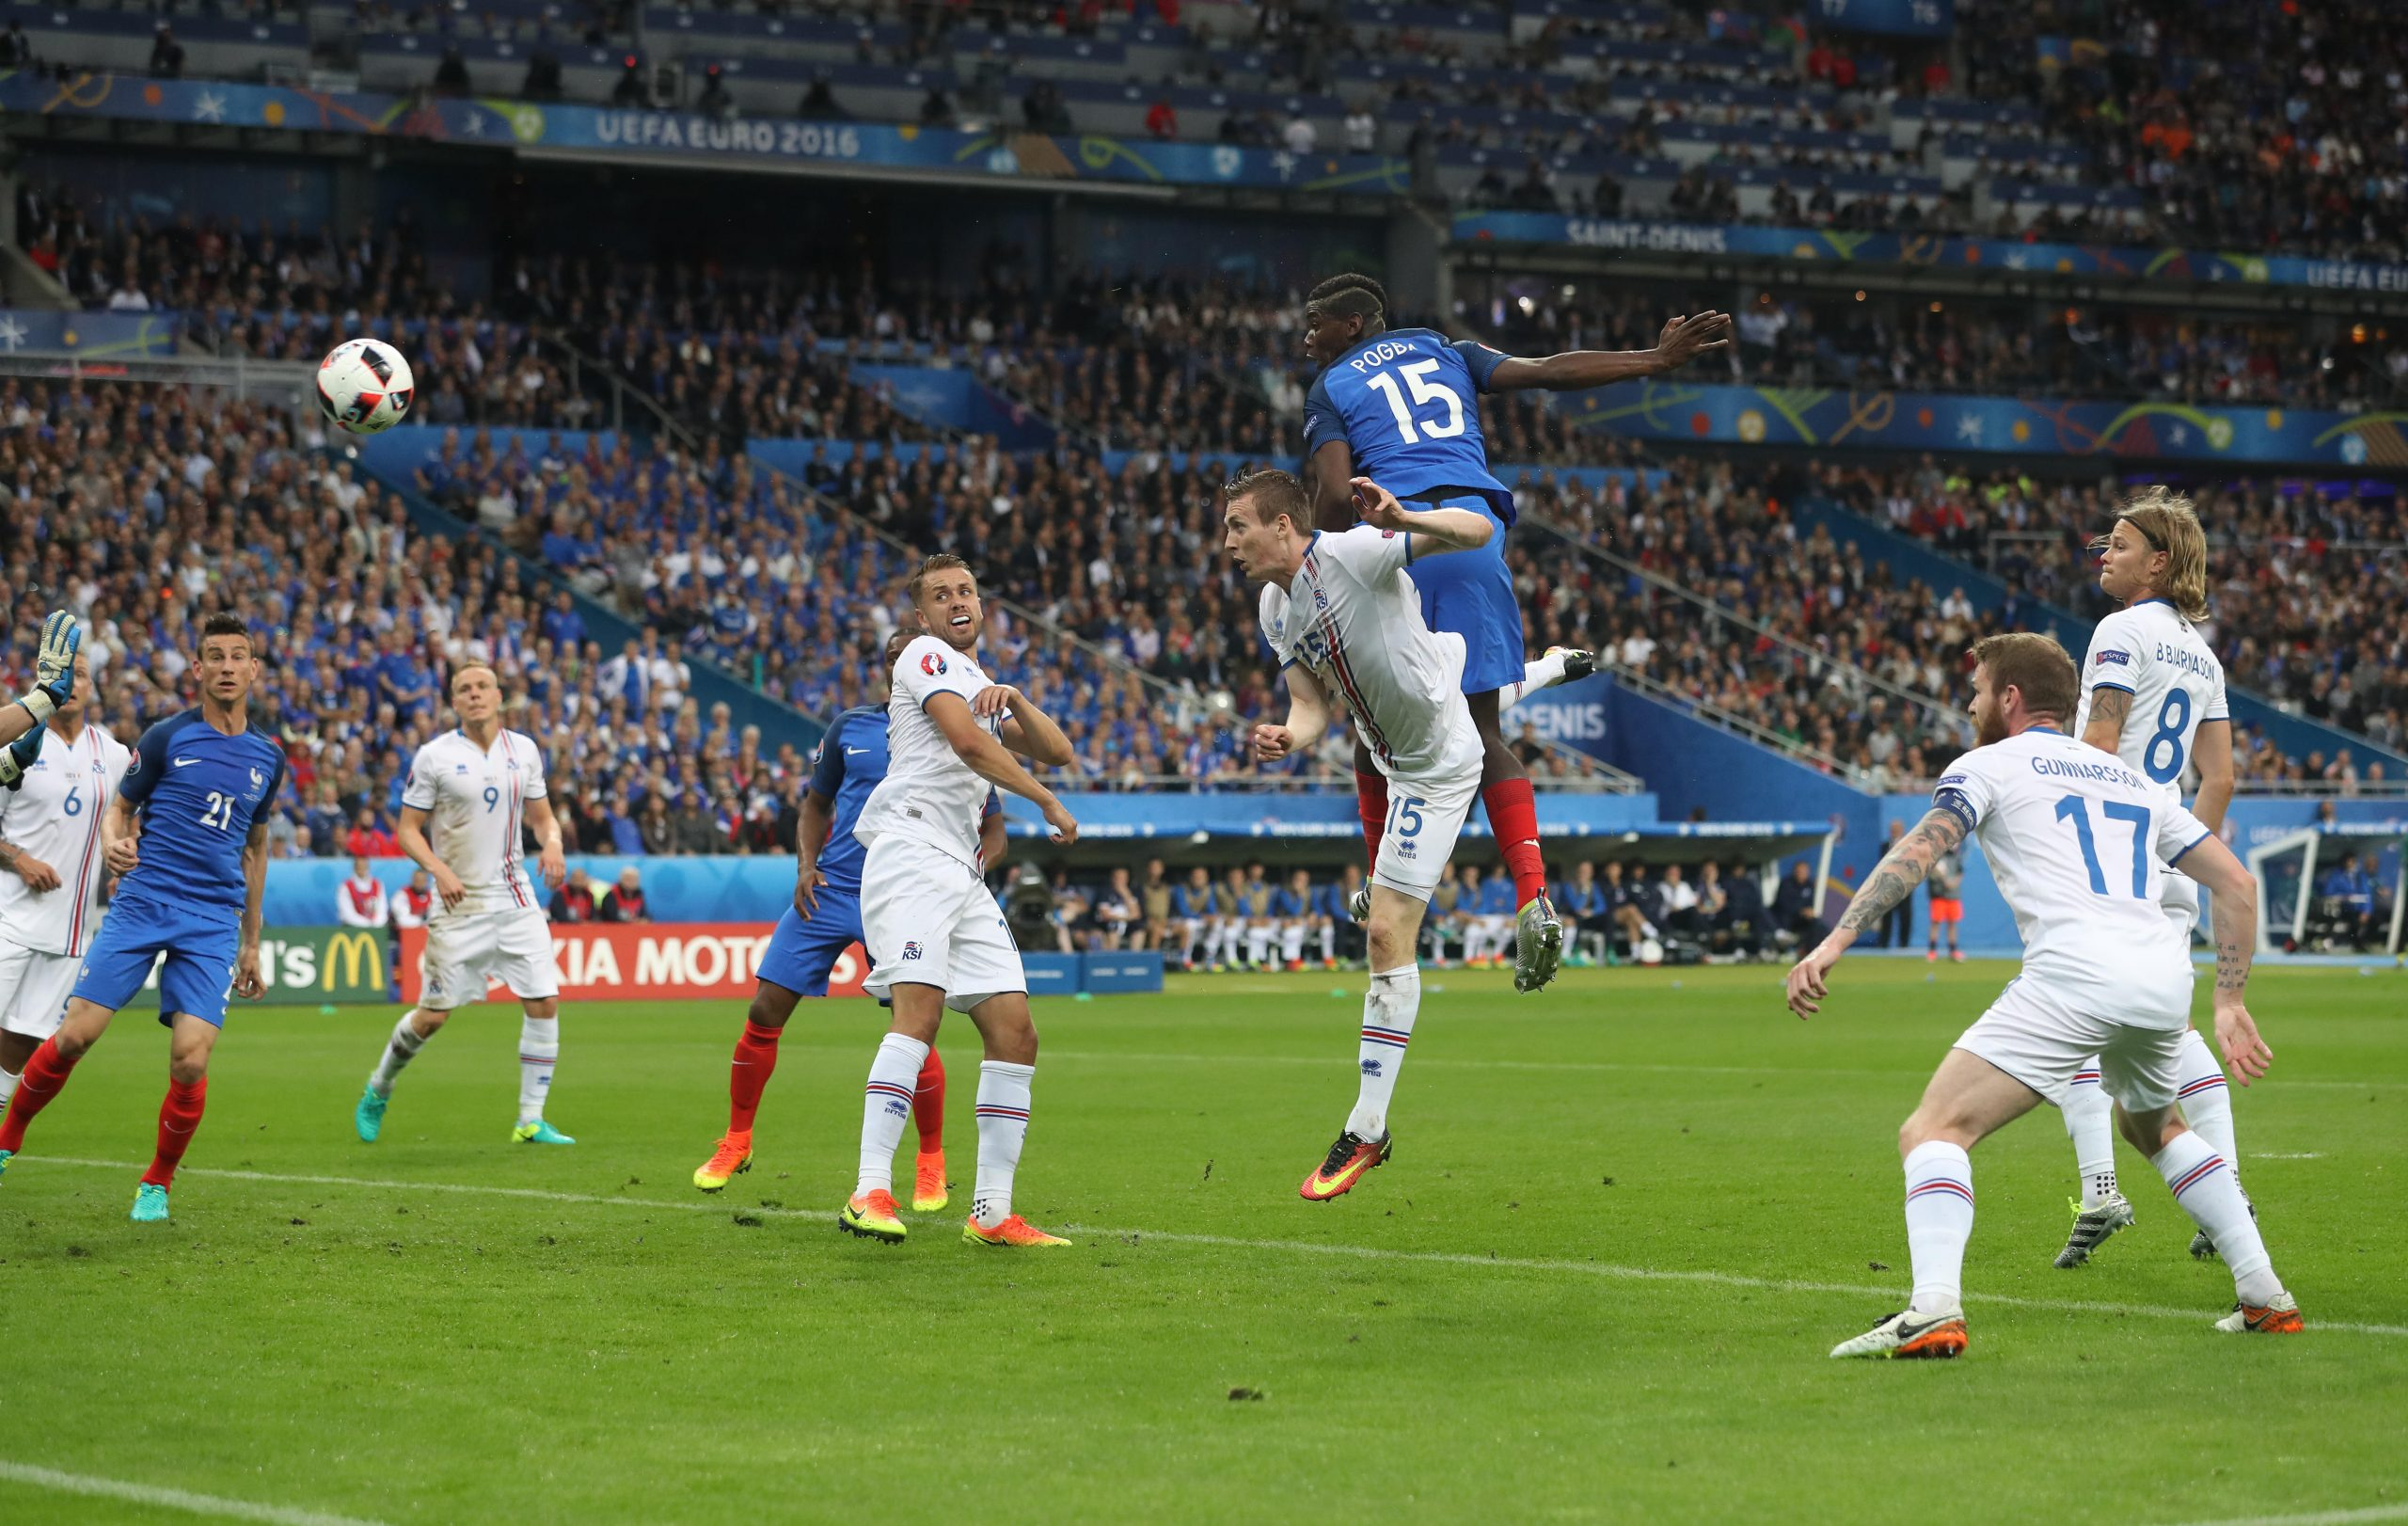 Paul Pogba of France scores his goal, France's second during the UEFA European Championship 2016 match at the Stade de France, Paris. Picture date July 03